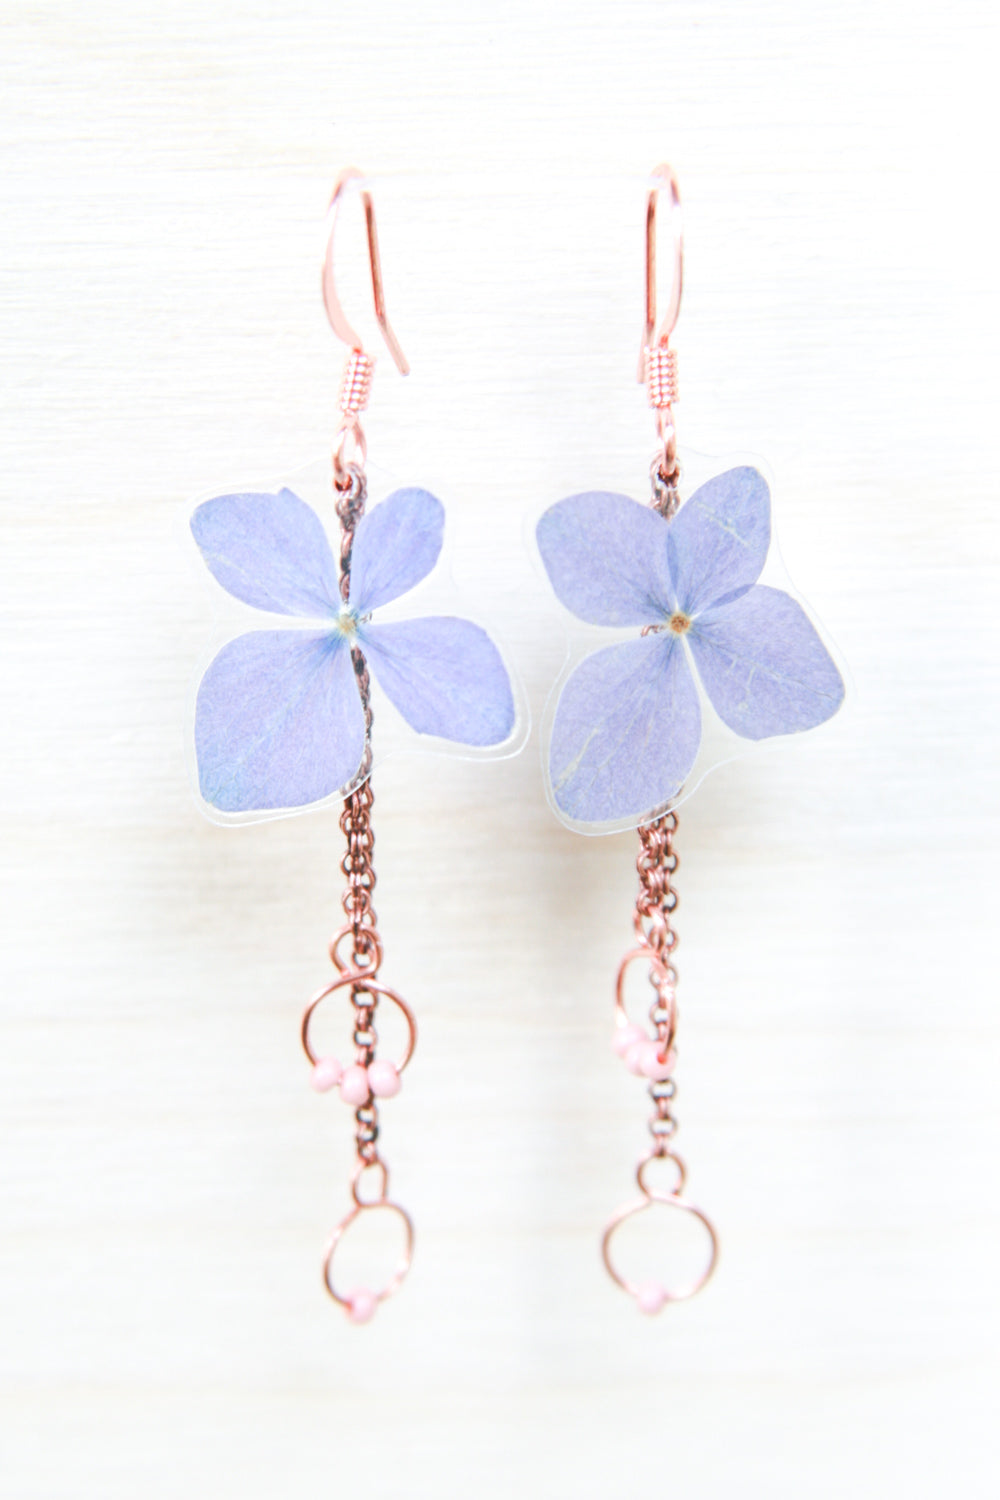 Purple Hydrangea Pressed Flower Earrings with Rose Glass Beads